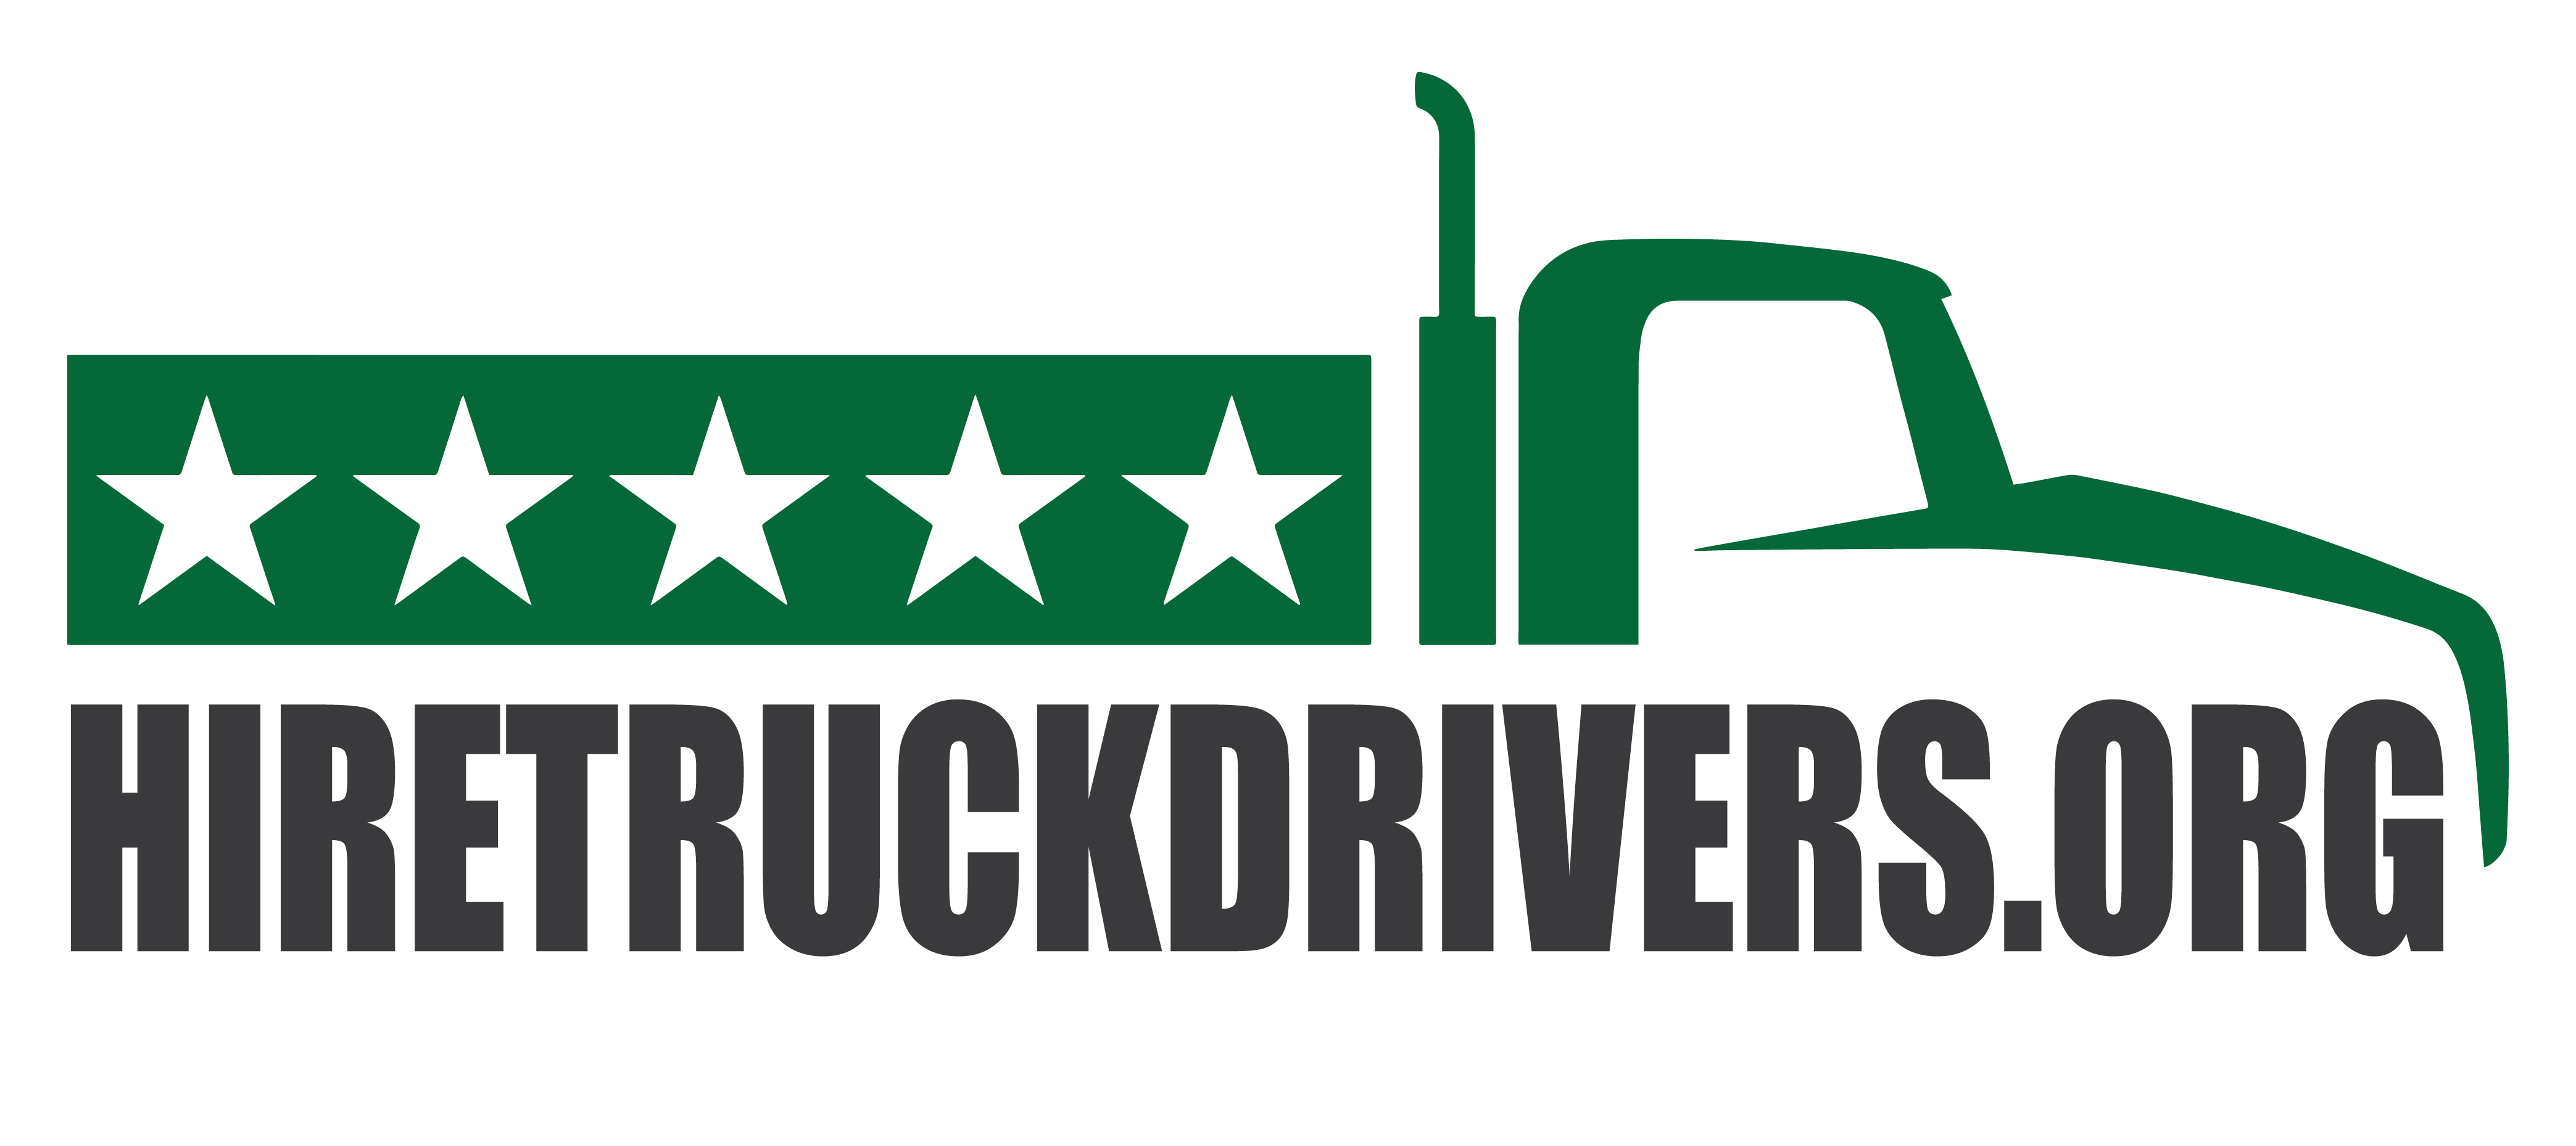 Hire Truck Drivers